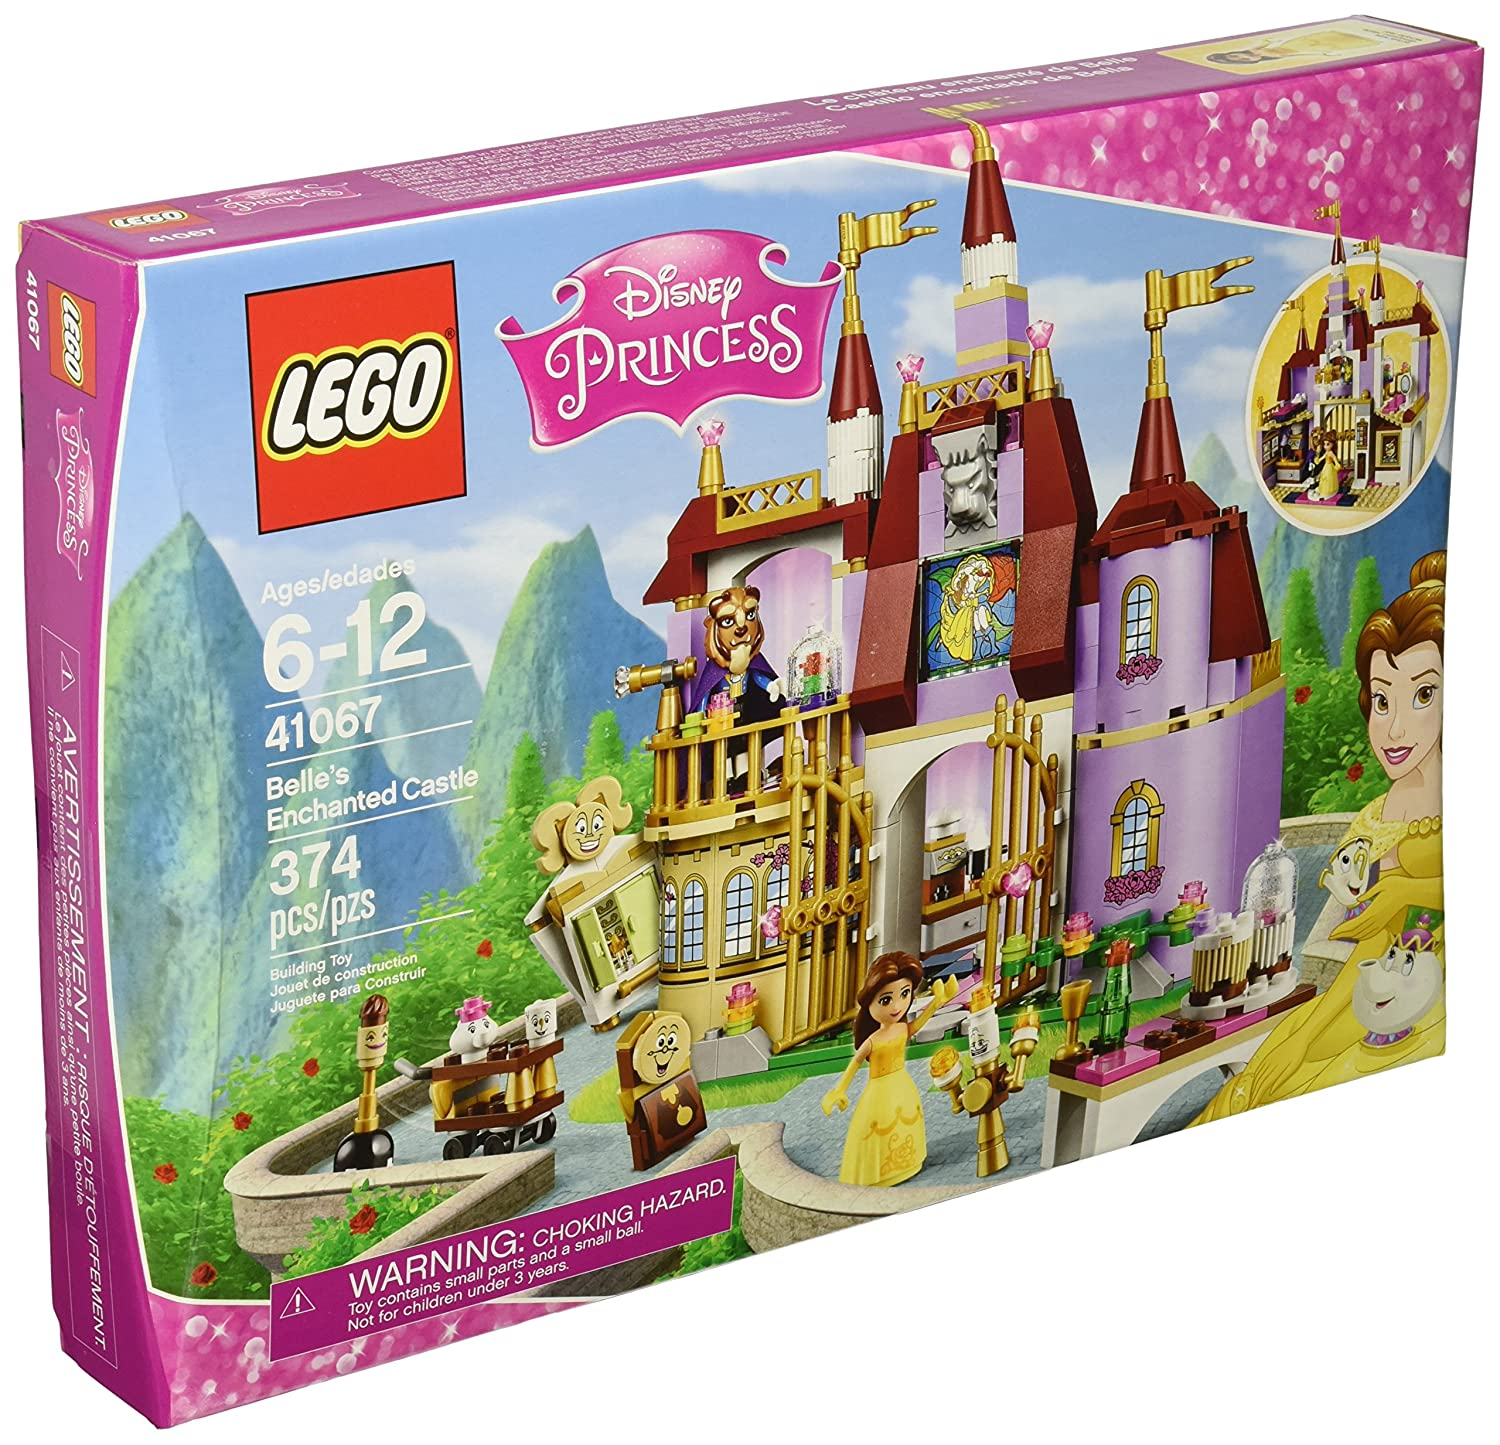 Best Building Toys For Girls : Best toys for a year old girl christmas